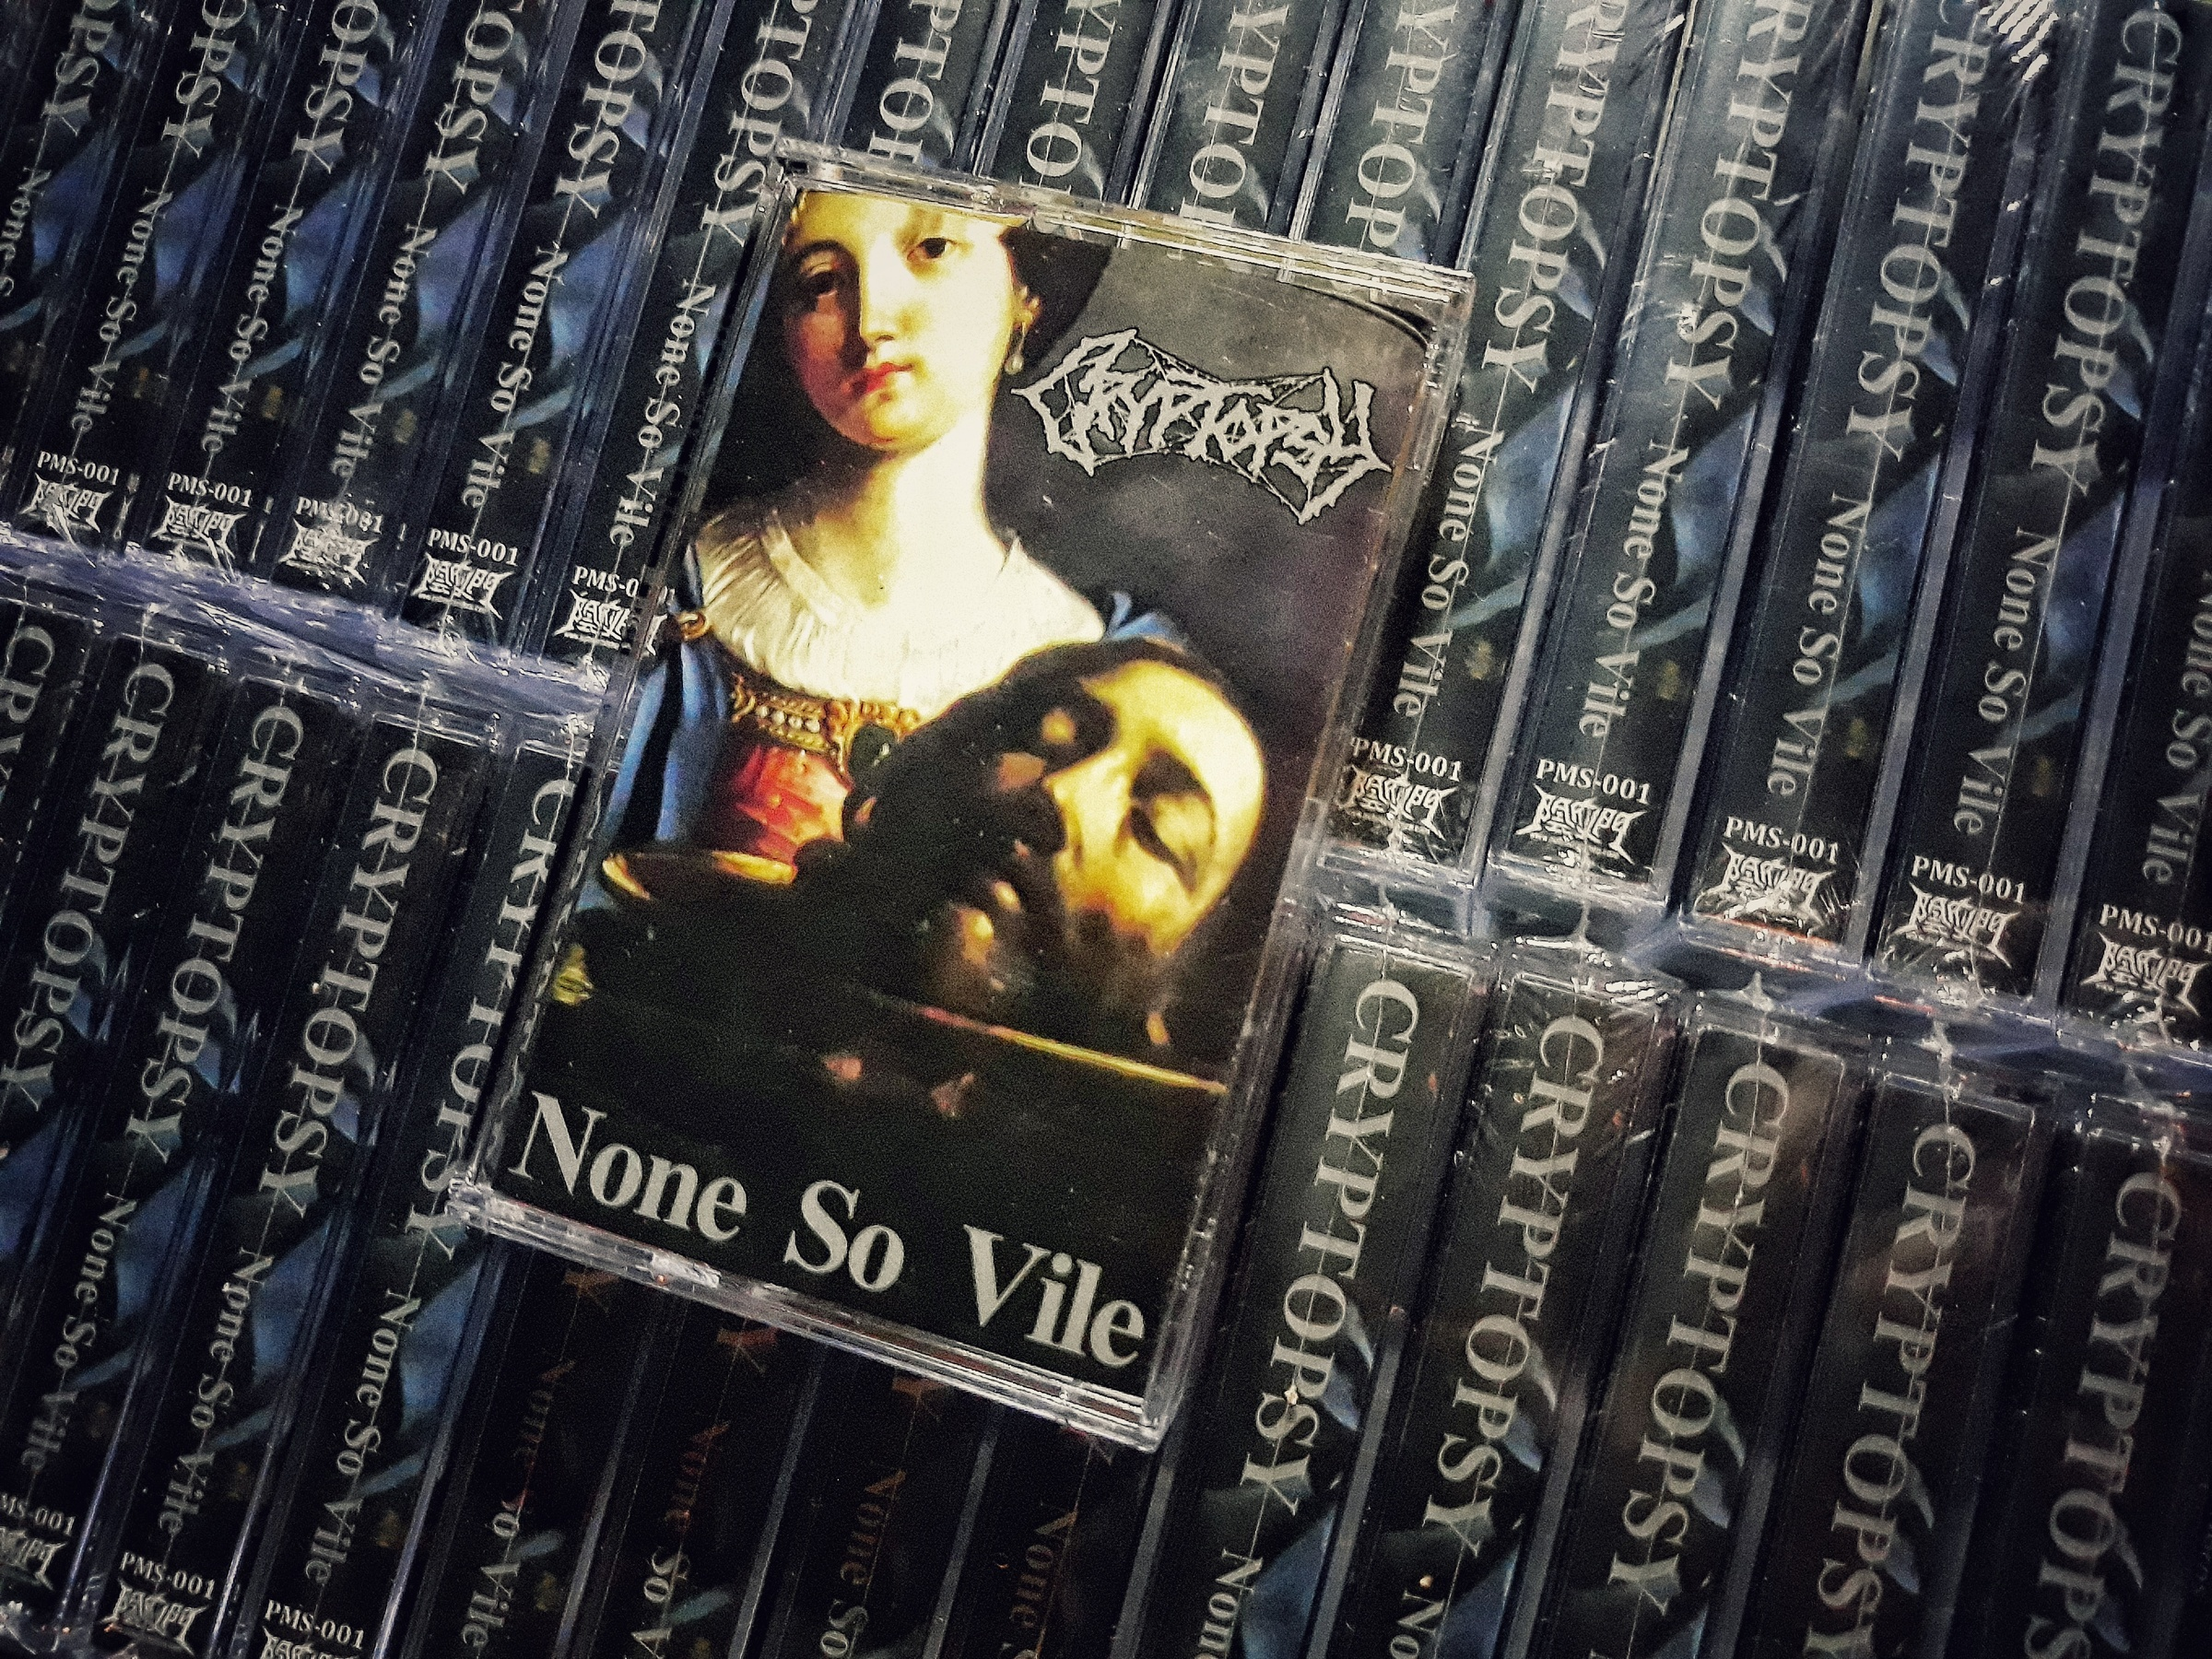 Cryptopsy - None so vile Tape (PMS-001)